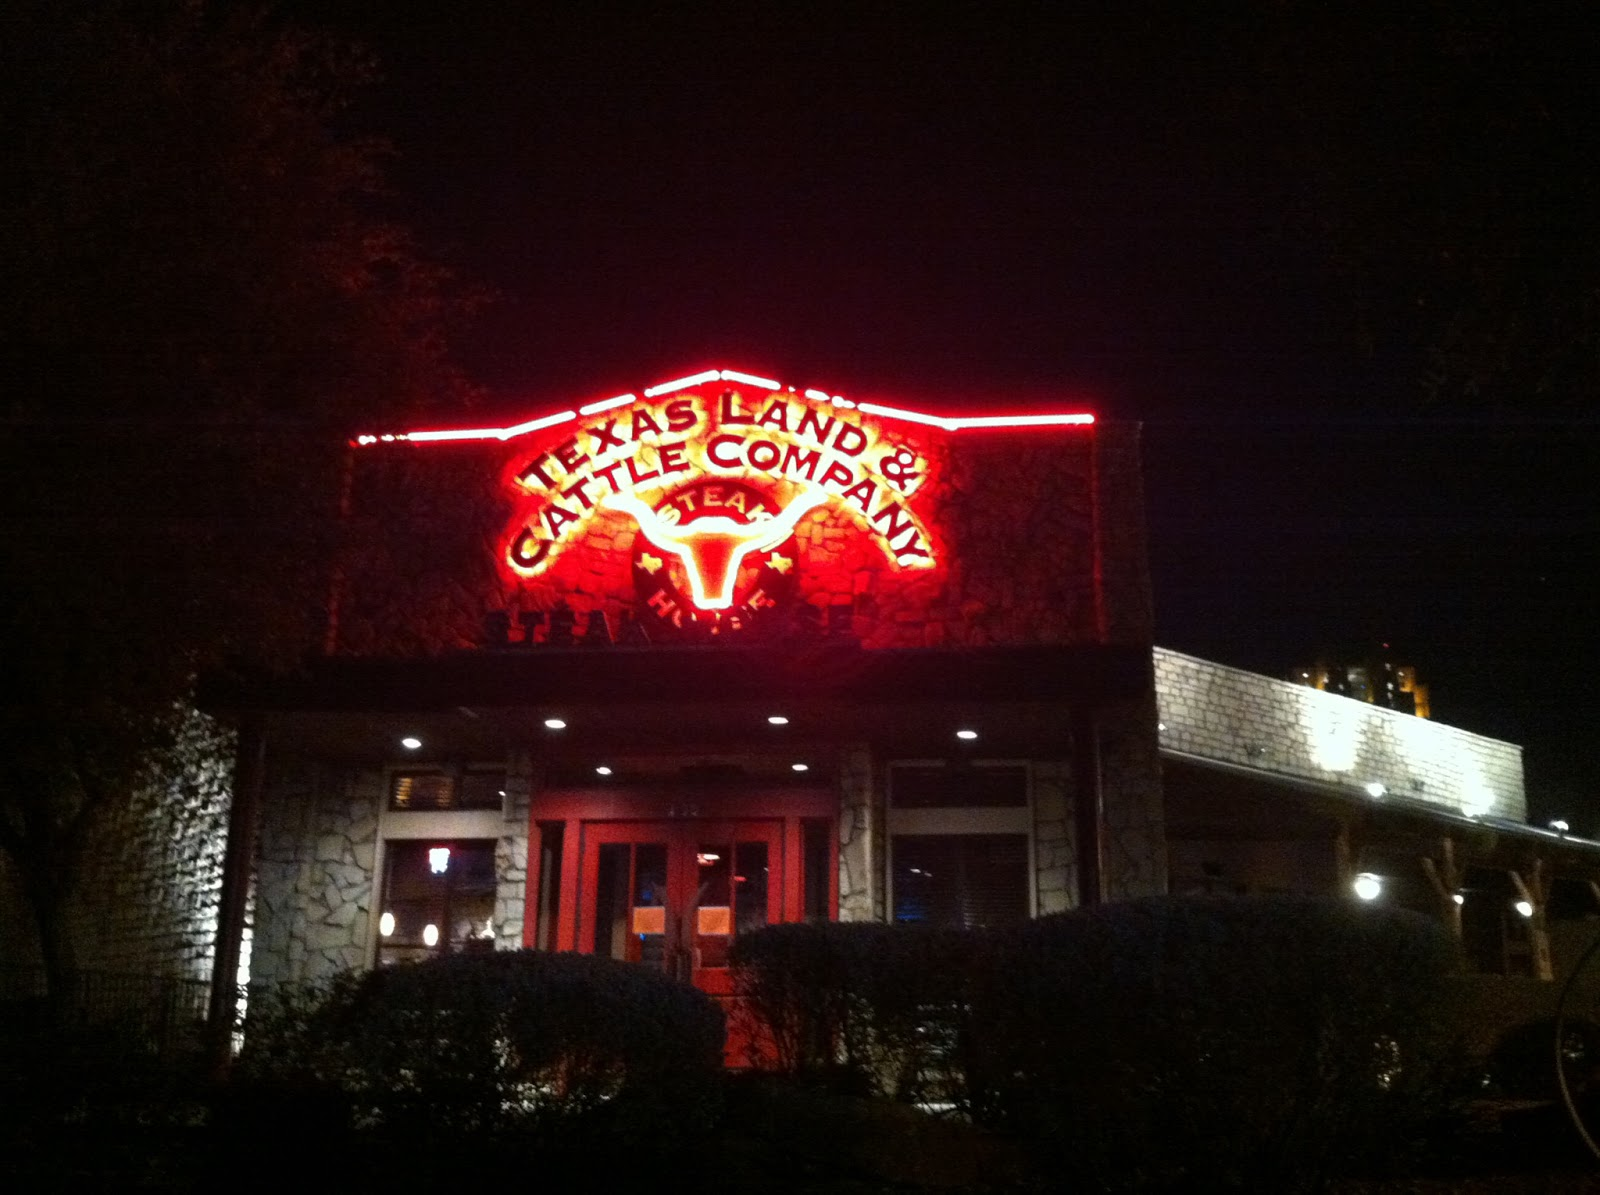 Texas Land Cattle Dallas Steak BBQ Barbeque Barbecue Bar-B-Que Ribs Steakhouse